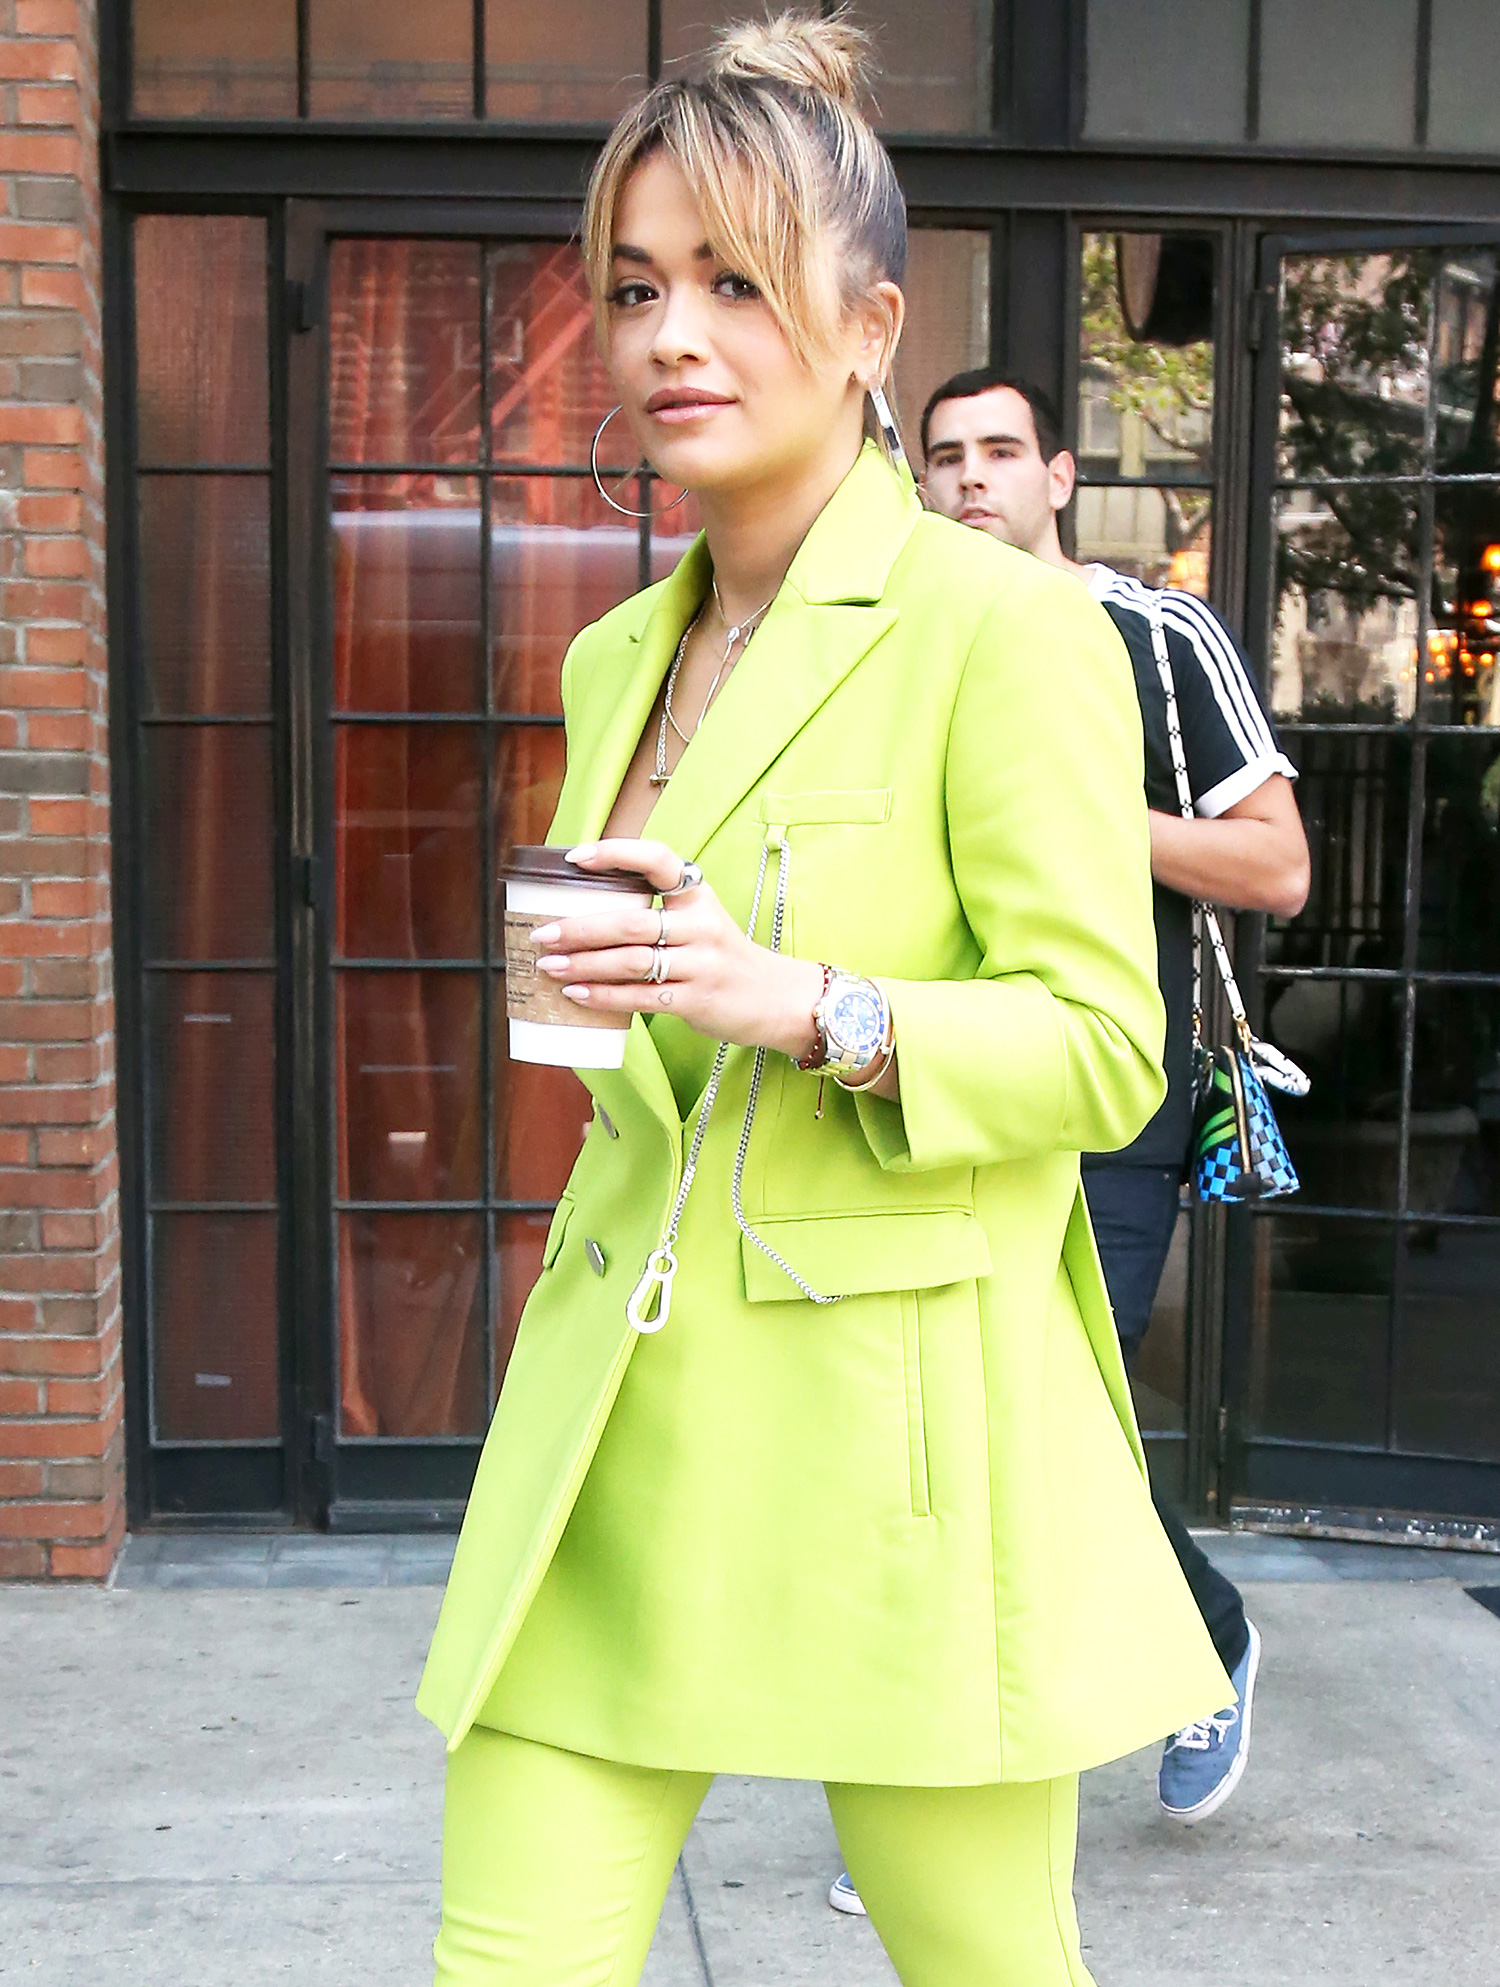 Rita Ora wears a fluorescent green suit outside her hotel in New York City